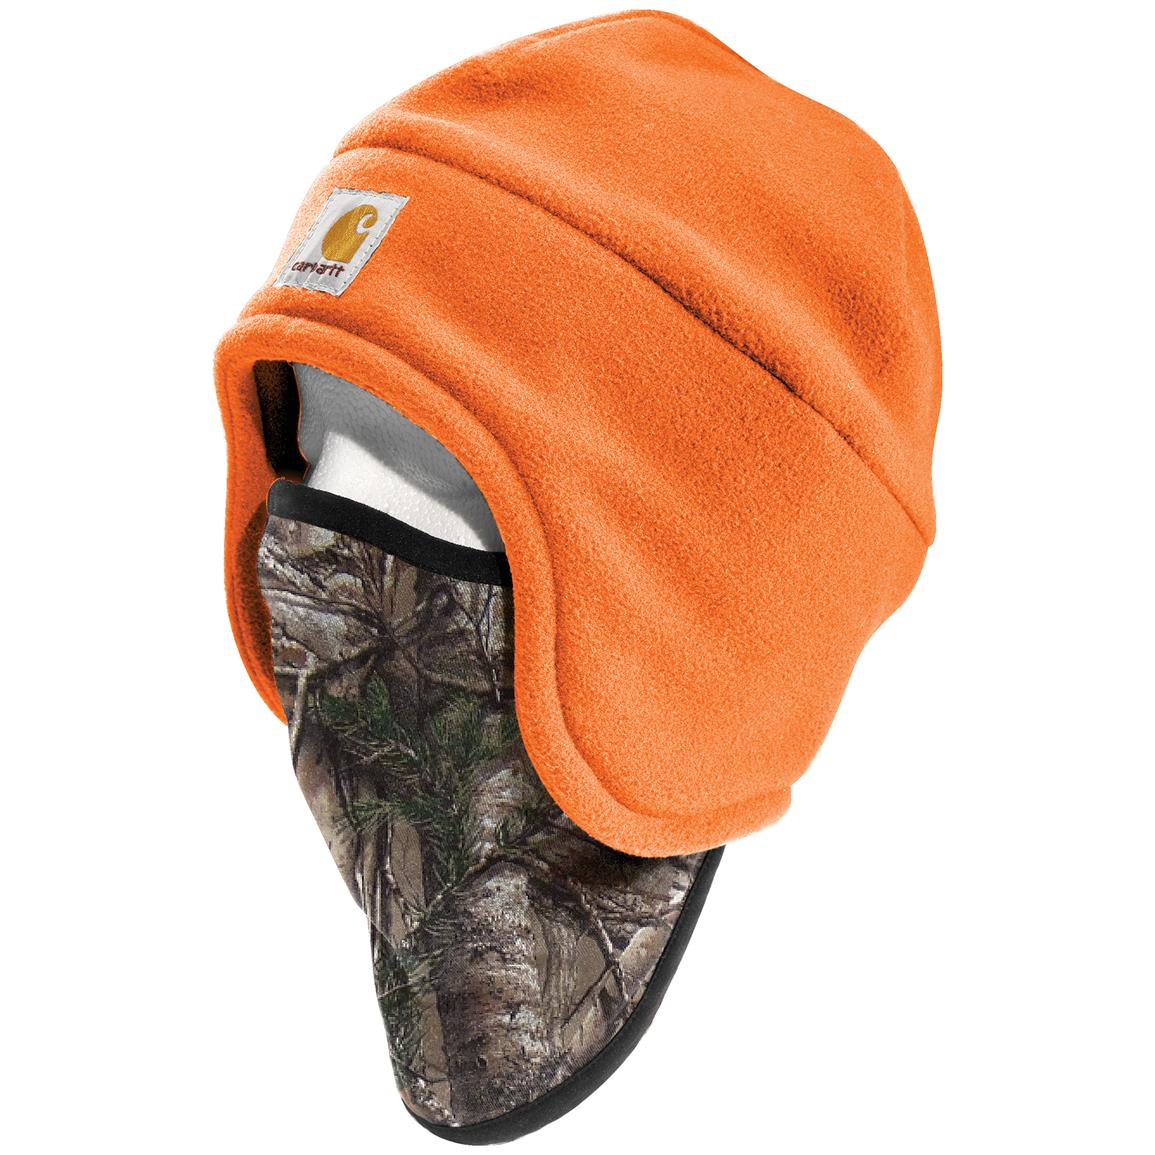 Carhartt Fleece 2-in-1 Hat with Face Mask, Bright Orange